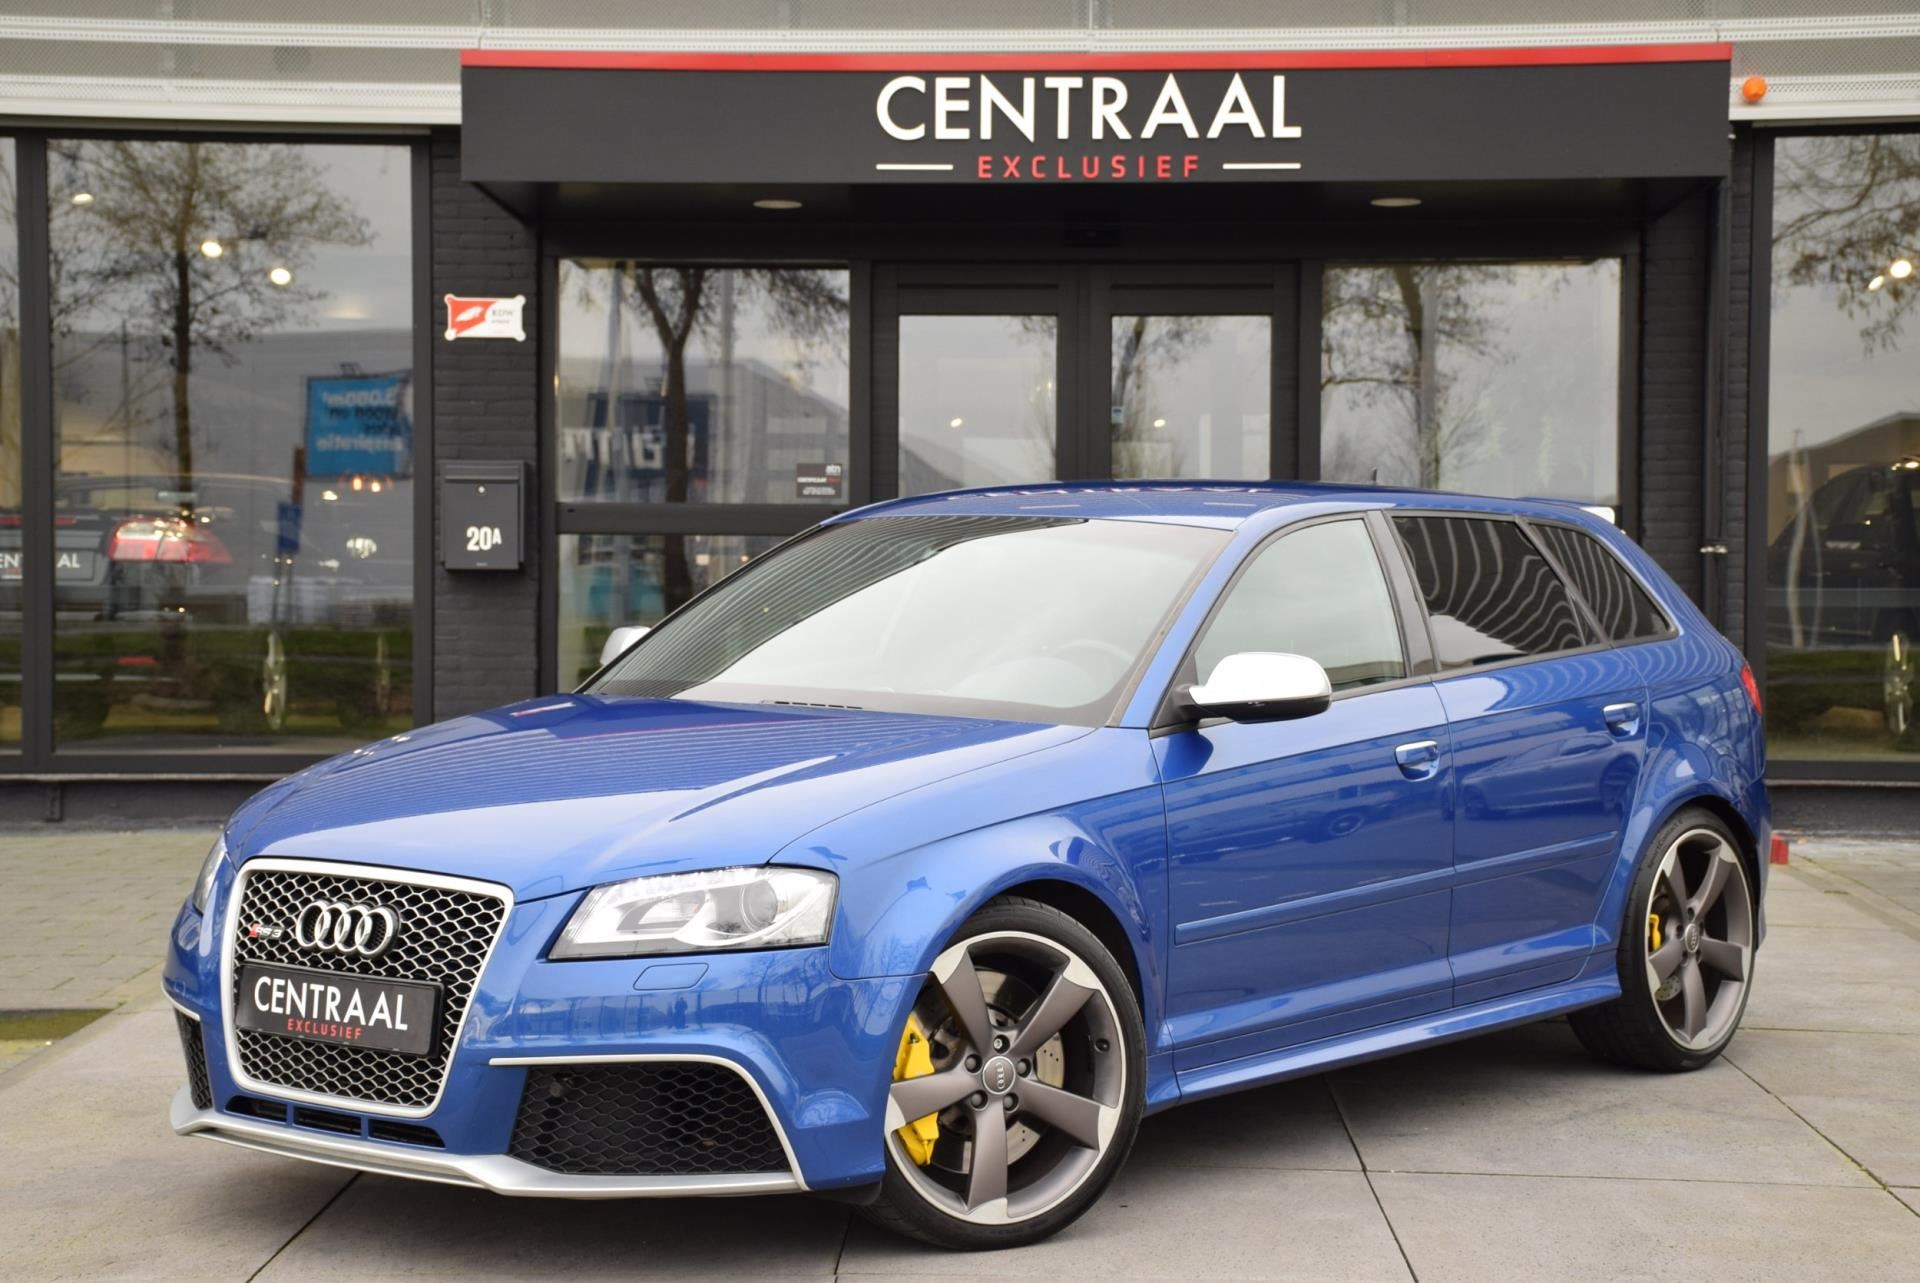 Audi RS3 Sportback occasion - Centraal Exclusief B.V.